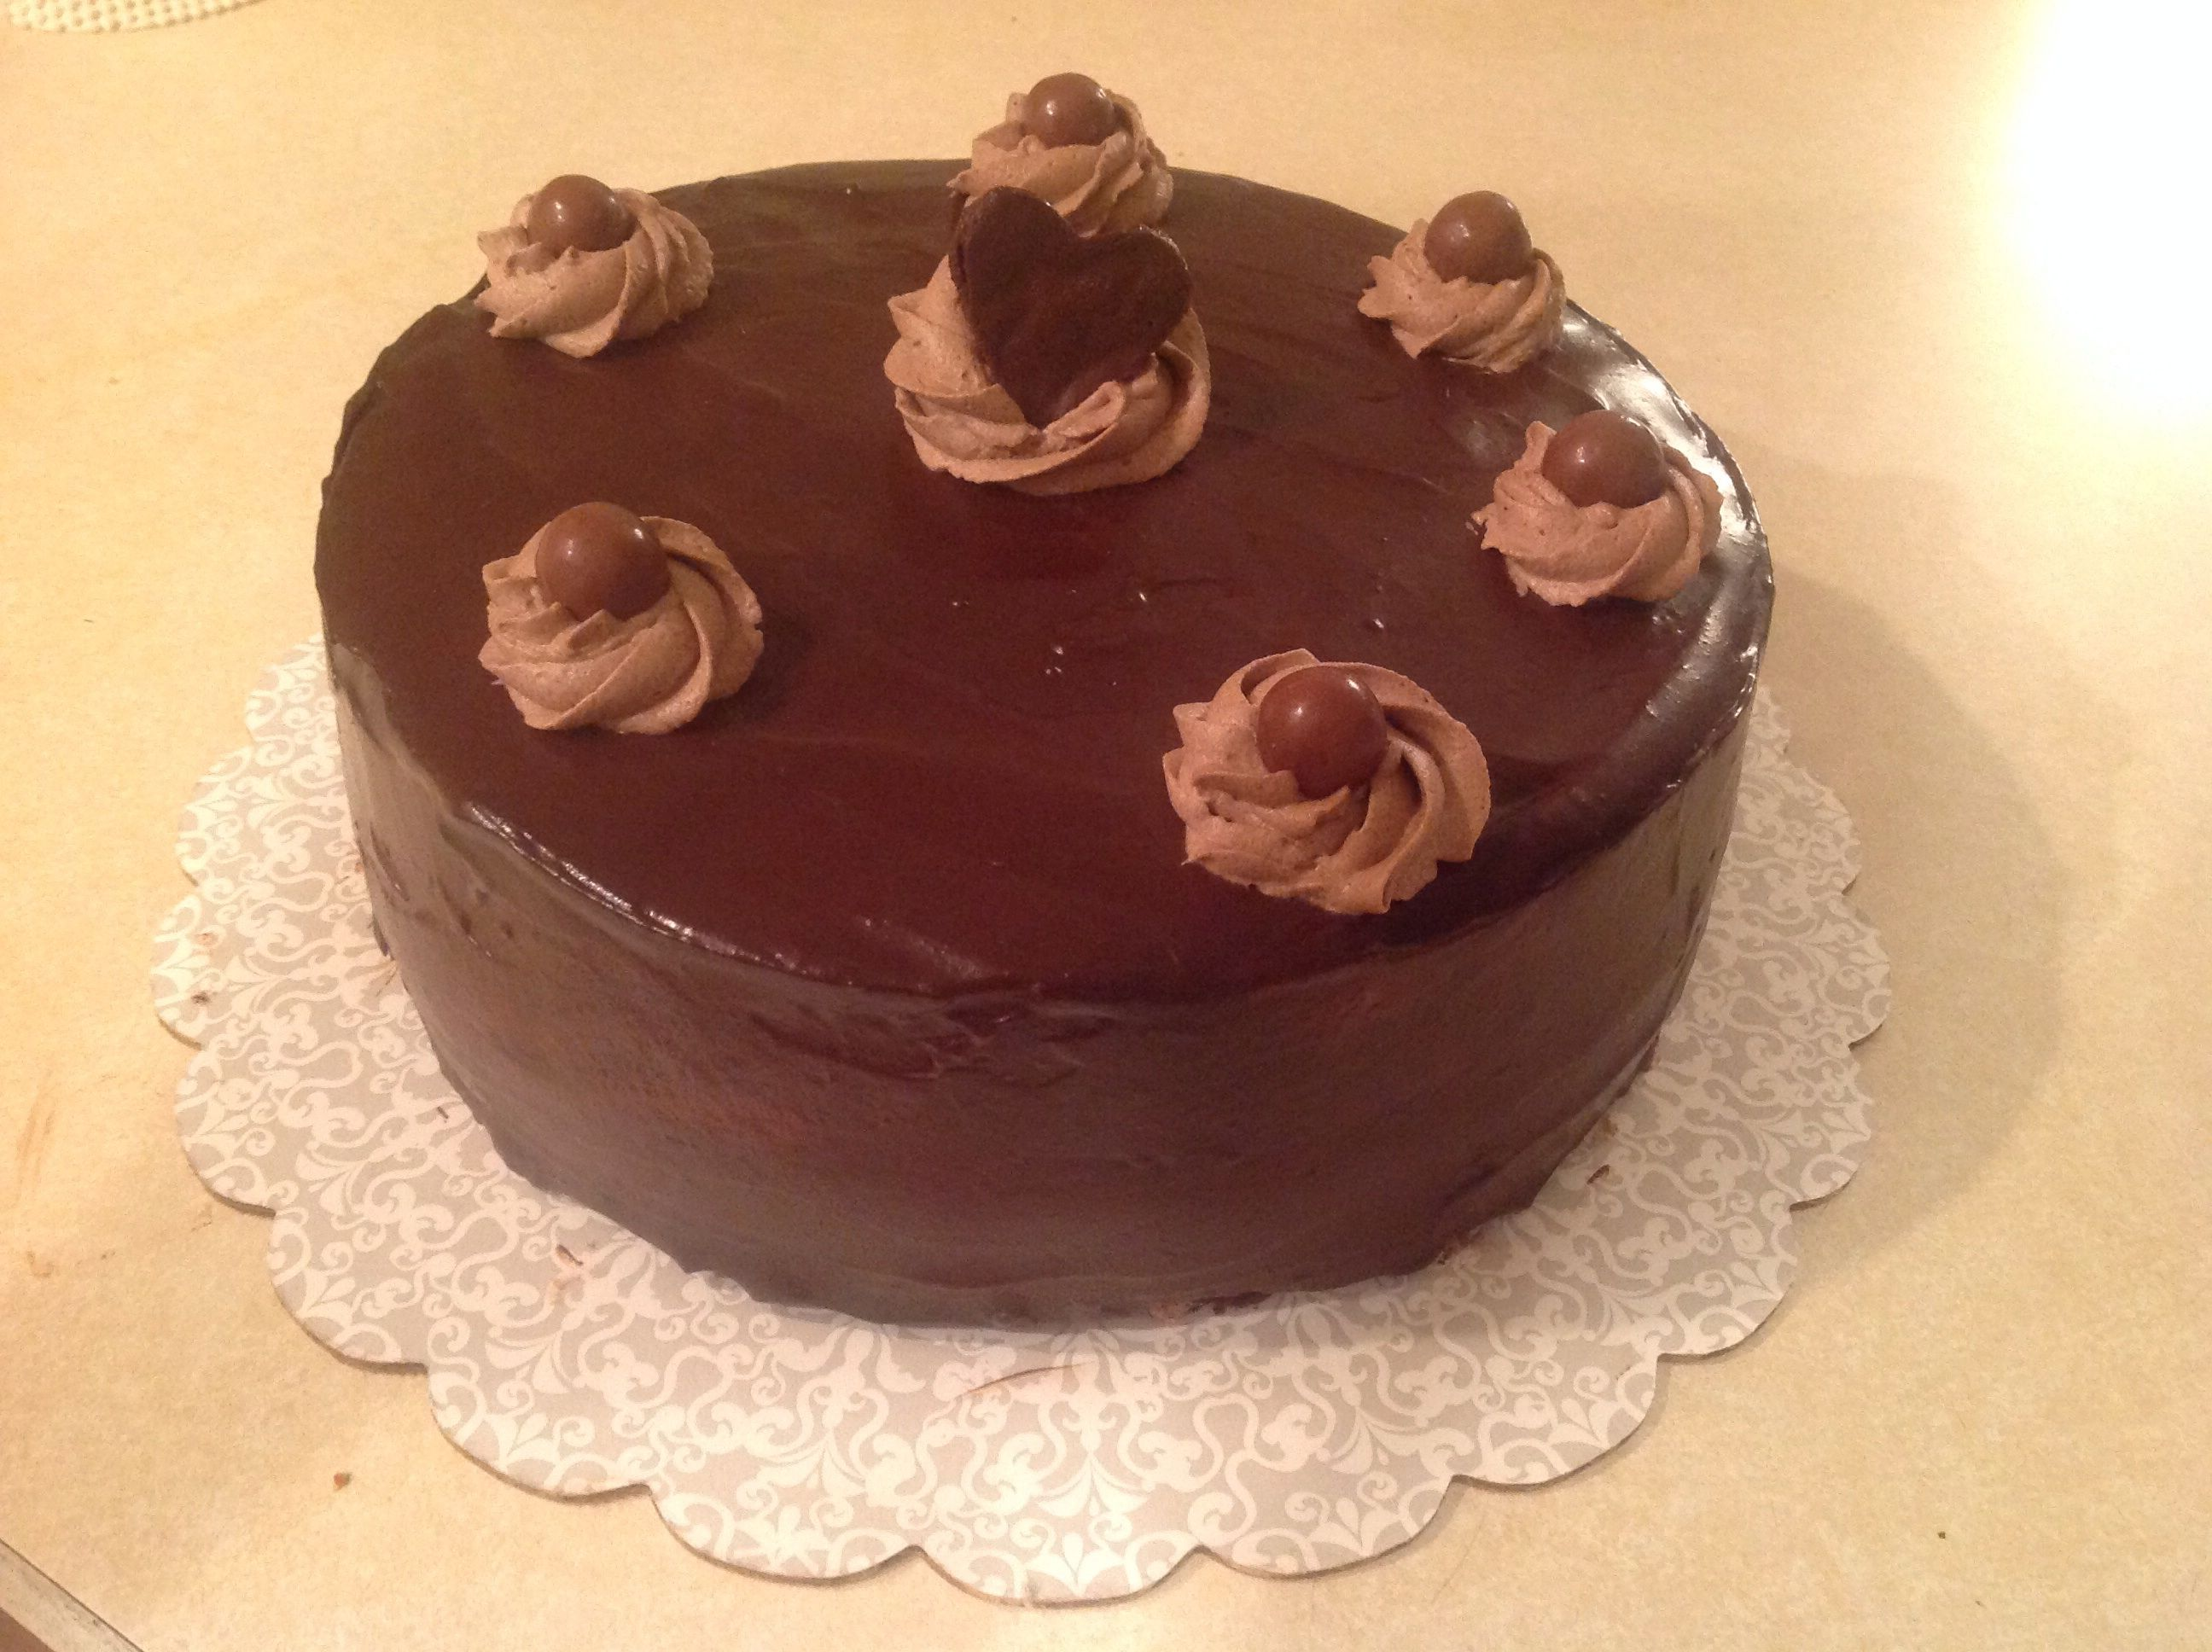 Cake Boss Chocolate Icing Recipe : Chocolate cake with chocolate mousse filling and frosting ...